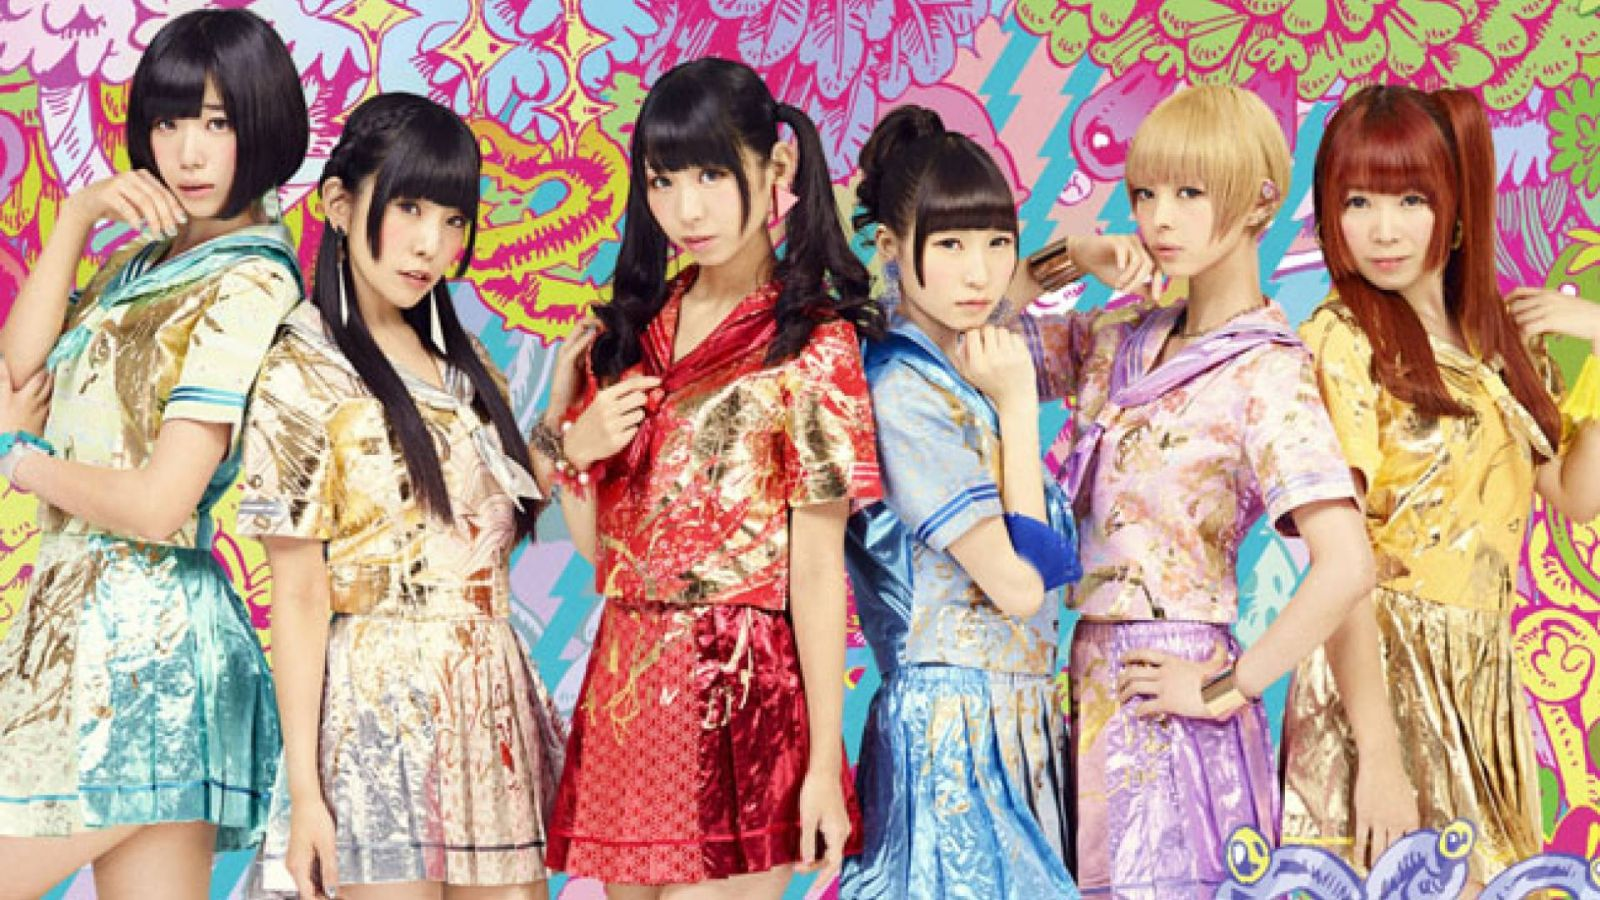 Dempagumi.inc © 2015 DEARSTAGE inc. All rights reserved.